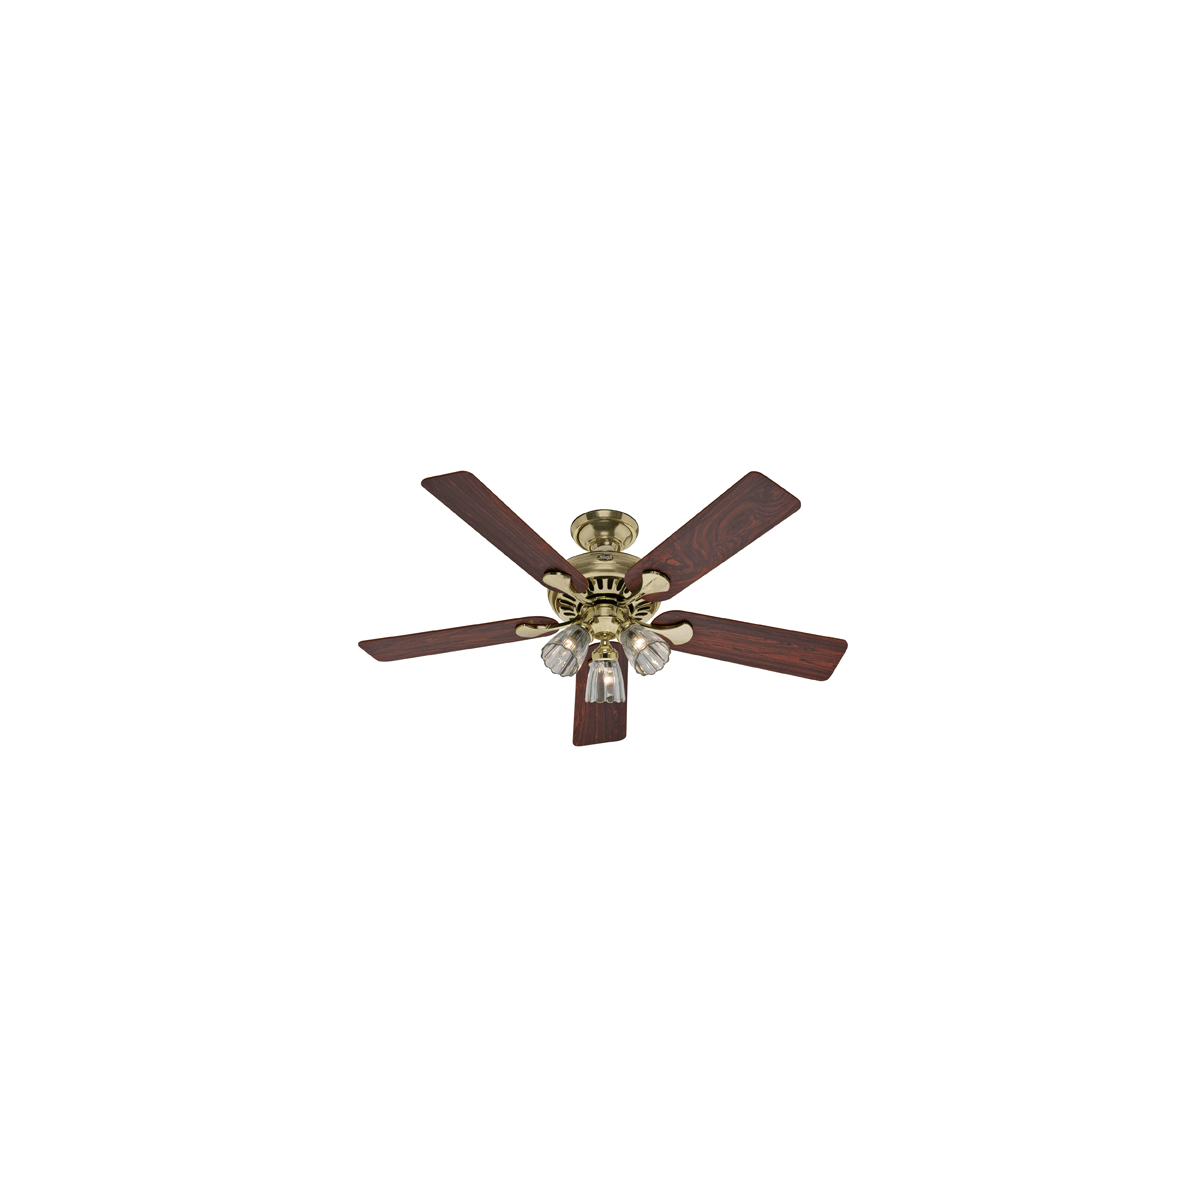 Hunter 20544 Bright Brass 52 Summer Breeze Plus Ceiling Fan Blades And Light Kit Included